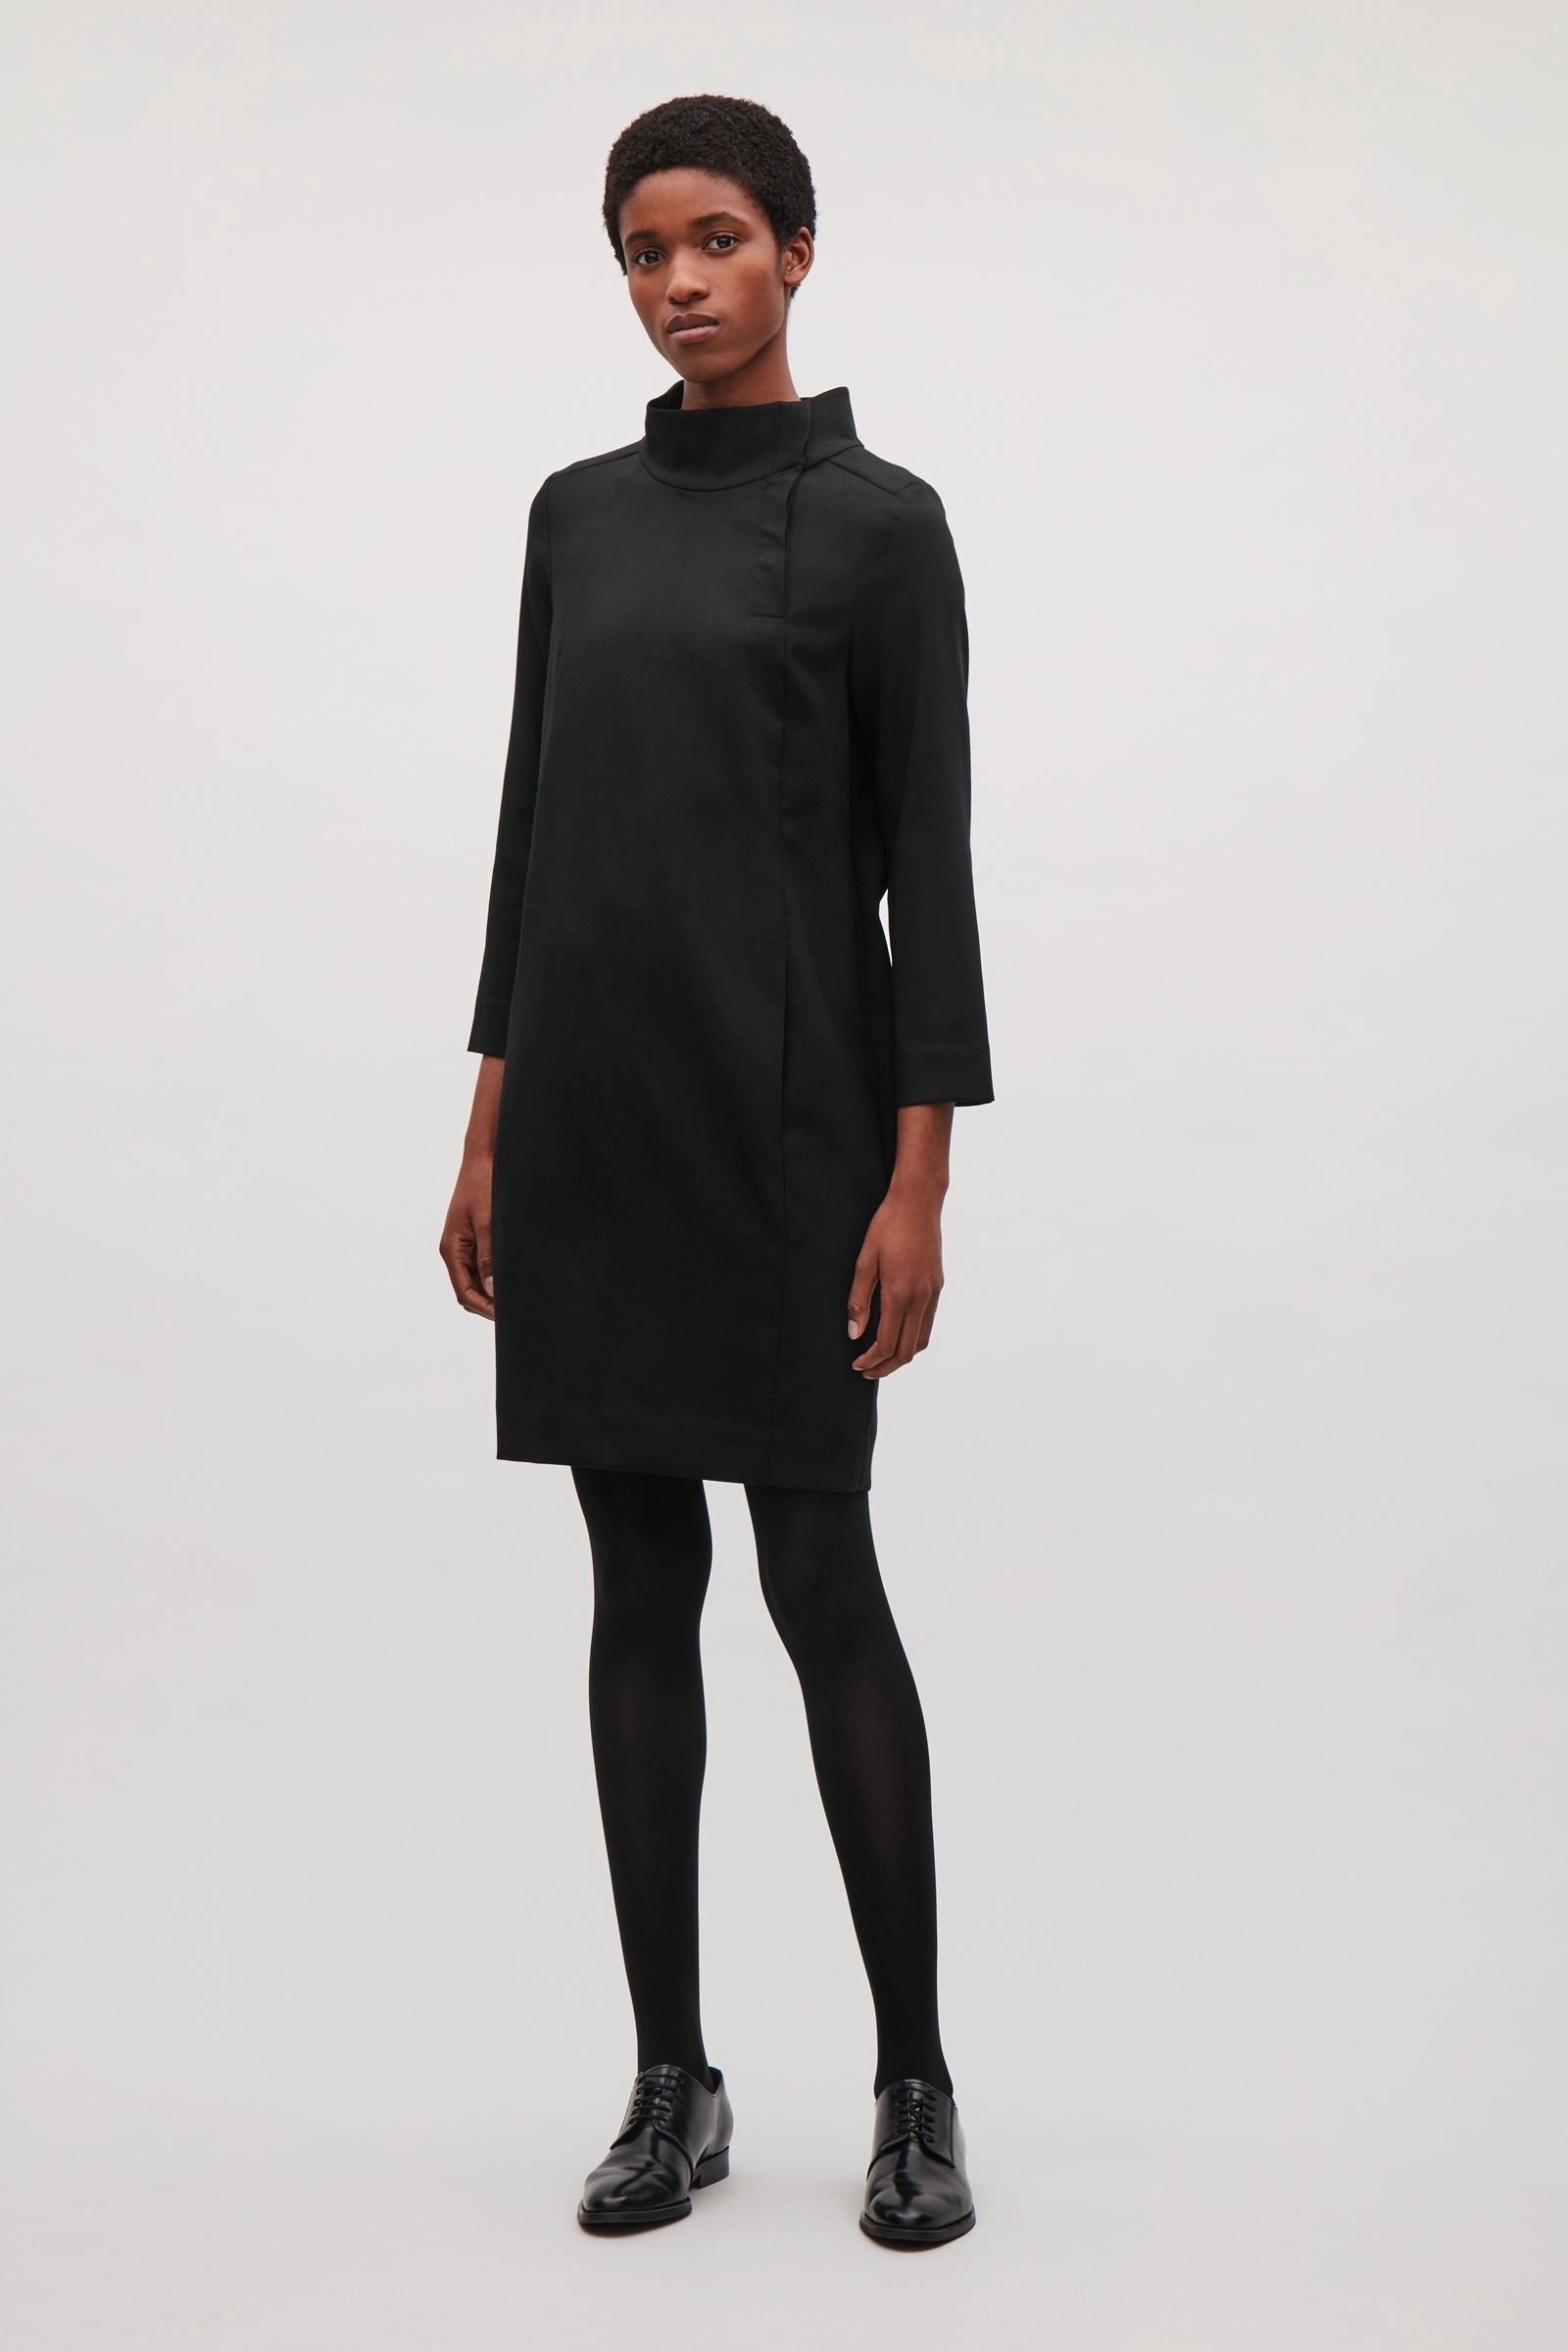 44b29c83c6be8 WOOL DRESS WITH BUTTON OPENING - black by COS | Products | Dresses ...